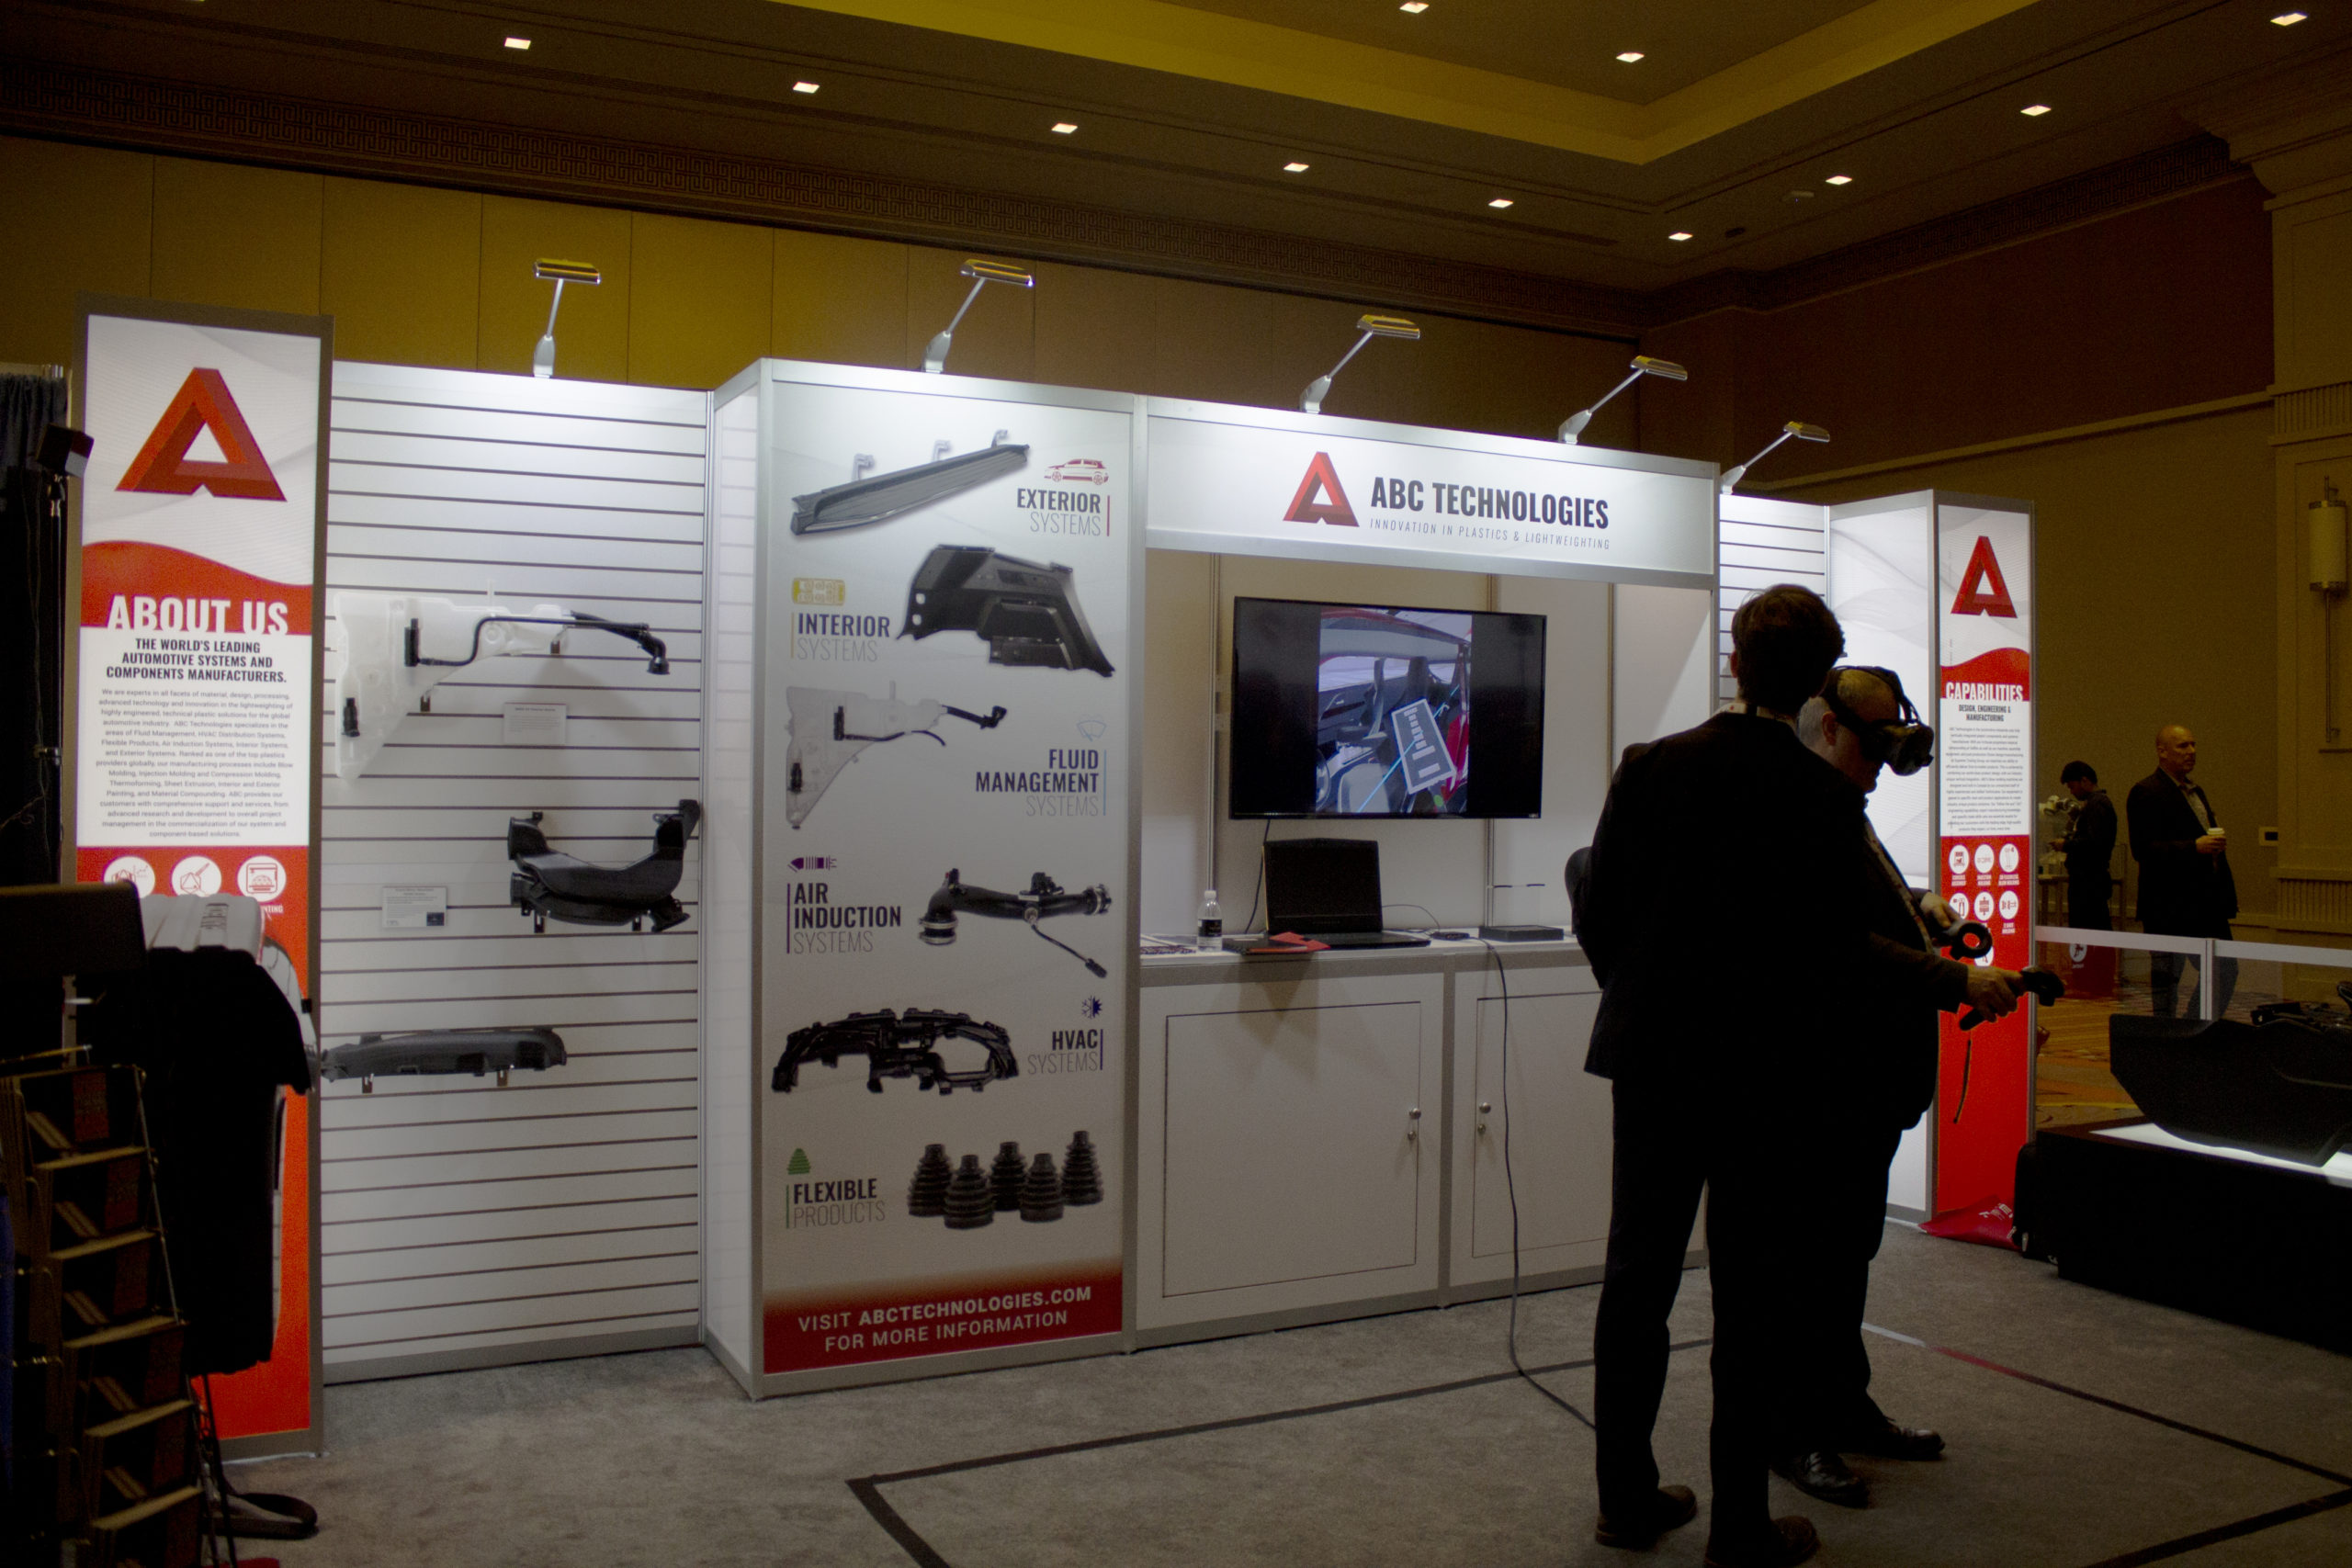 ABC Technologies' Trade Show booth at APMA